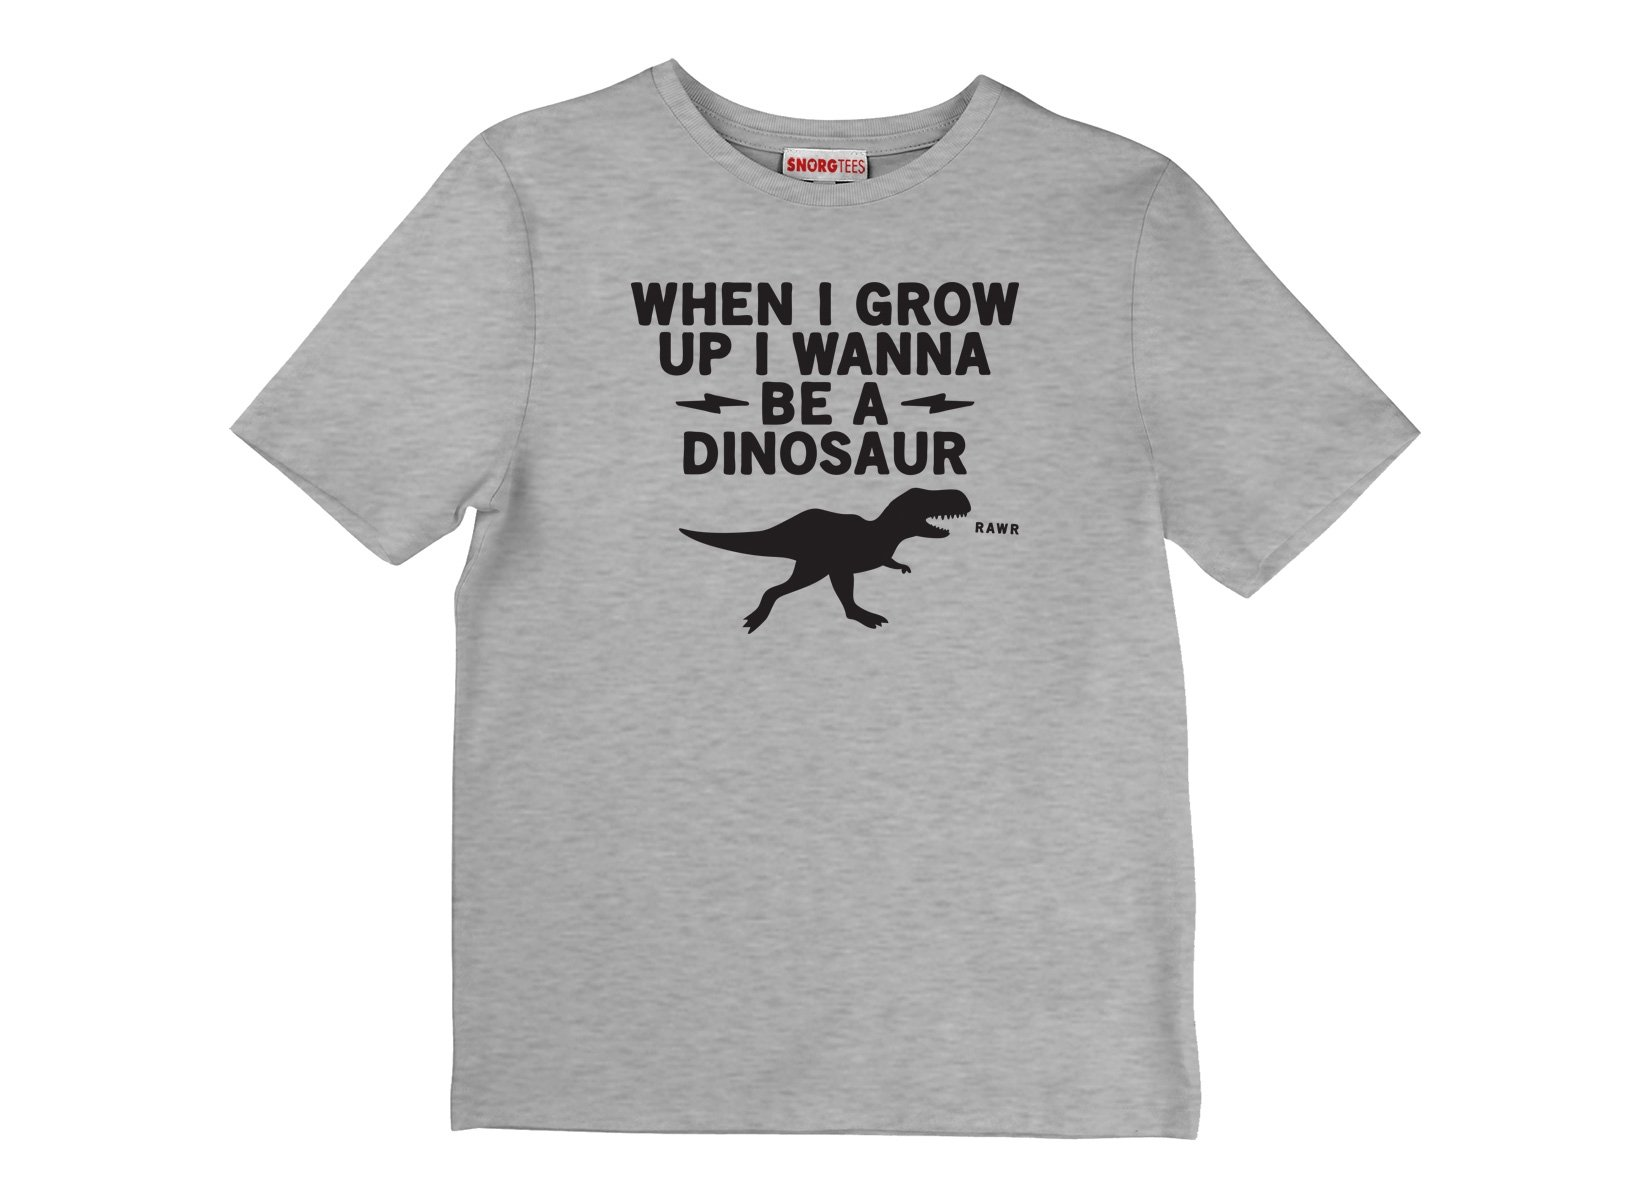 When I Grow Up I Wanna Be A Dinosaur on Kids T-Shirt